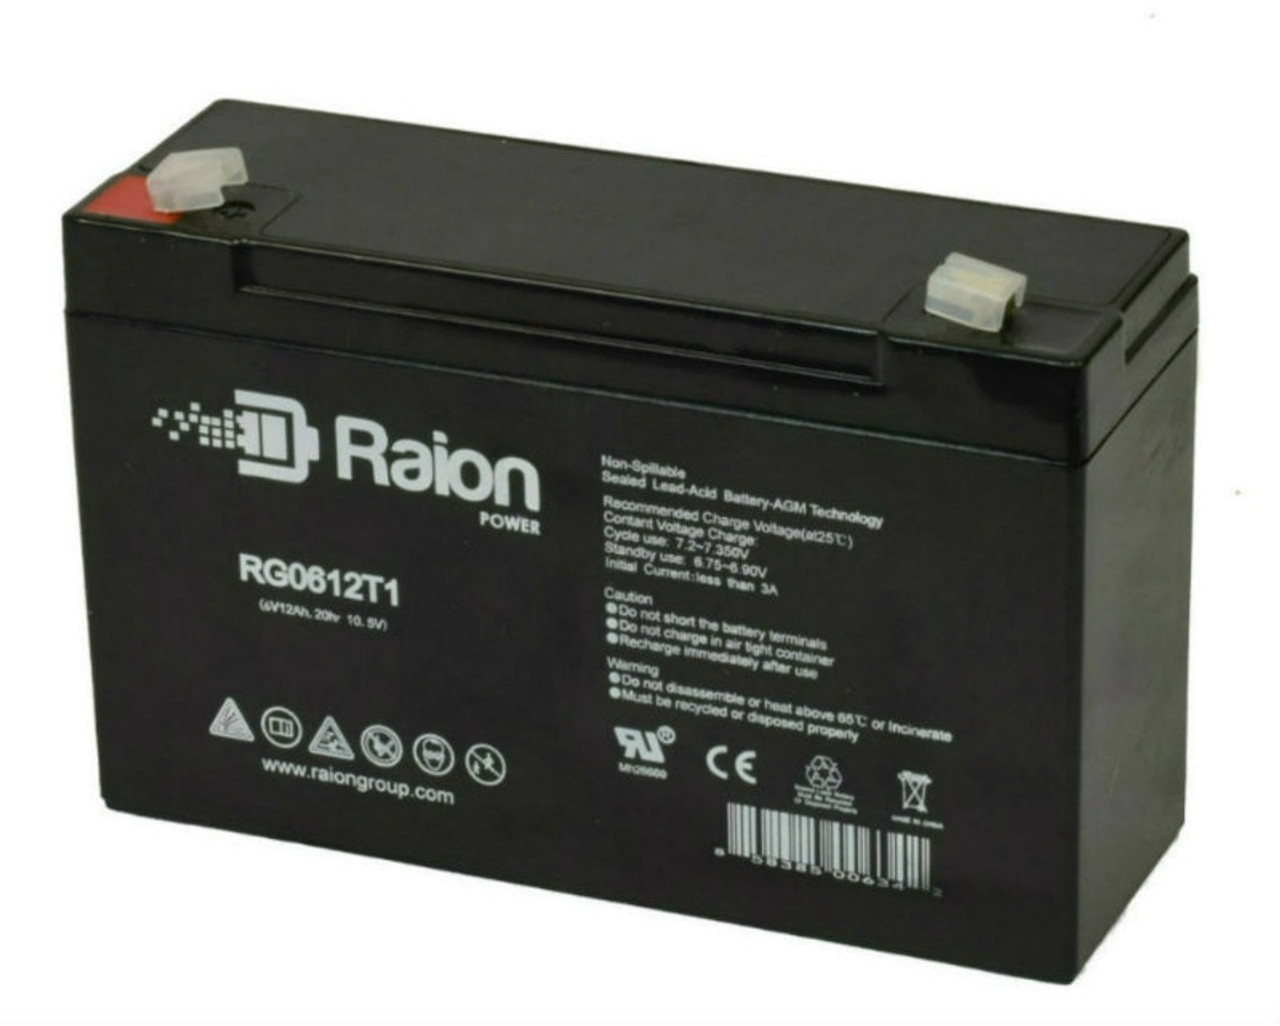 Raion Power RG06120T1 Replacement Battery Pack for Light Alarms 2RPG1 emergency light